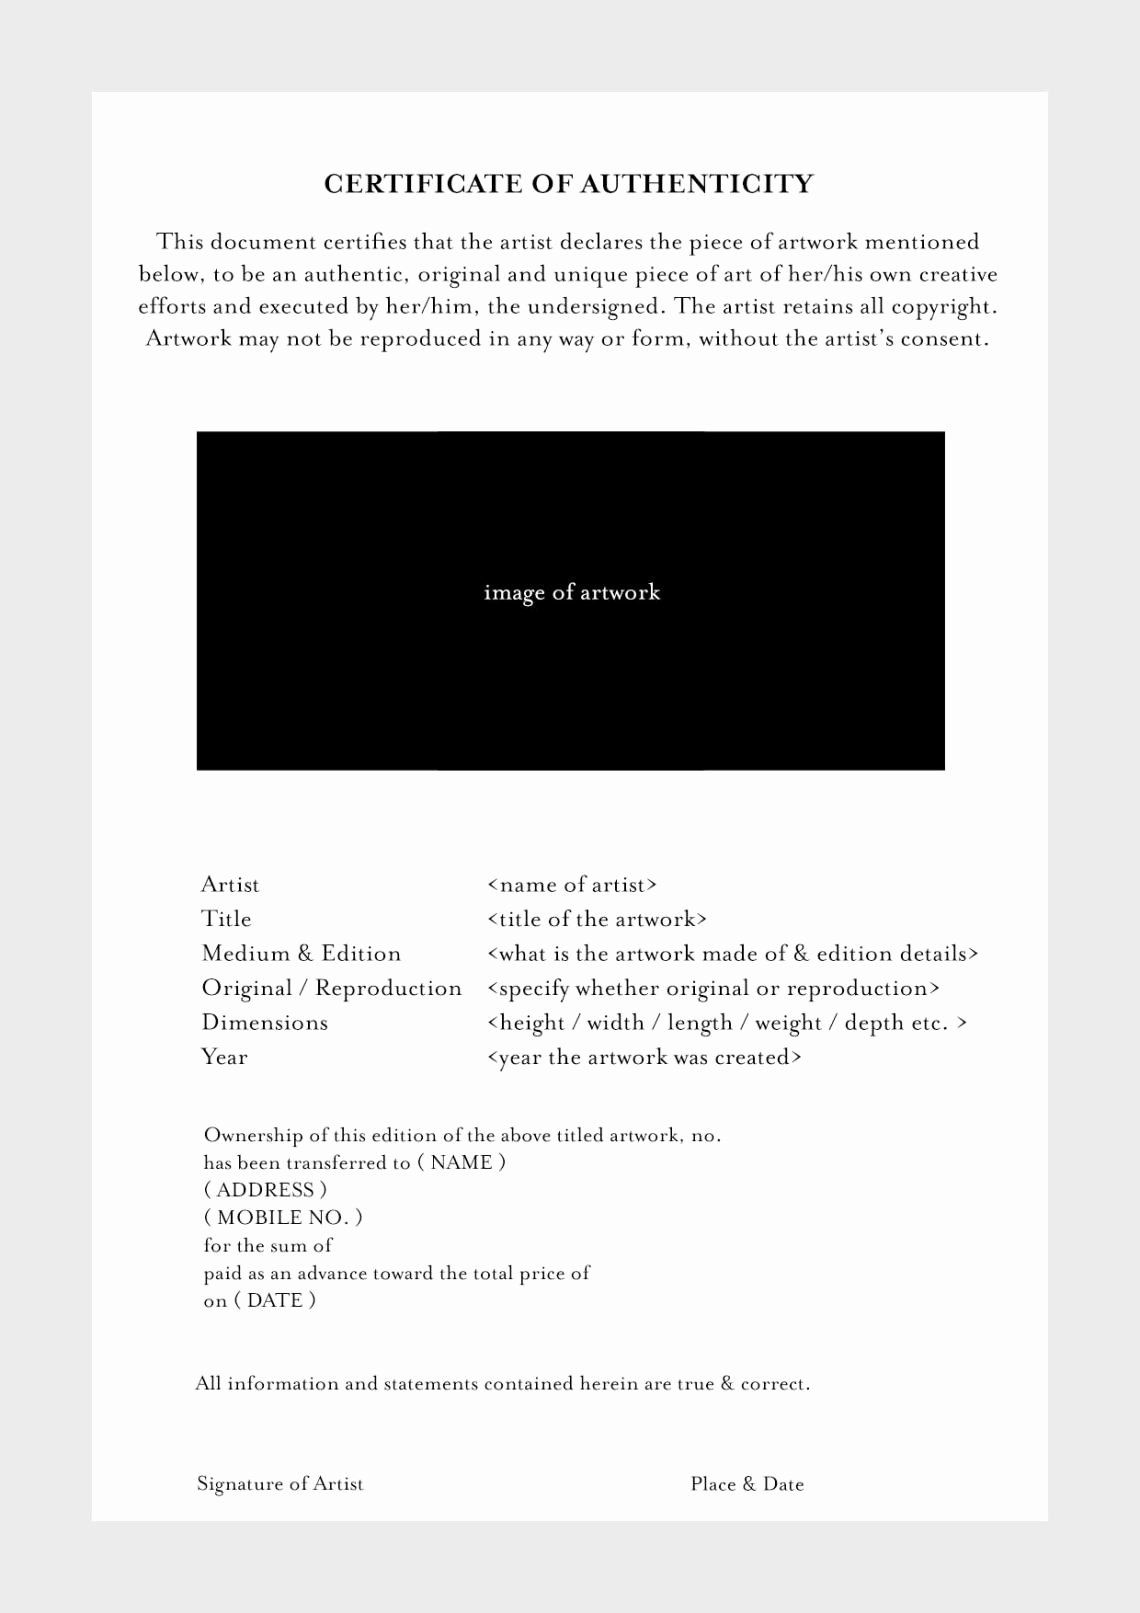 Certificate Of Authenticity Template For Art Inspirational Blank Certificate Authenticity Dannybarrantes Te Art Certificate Photography Templates Certificate